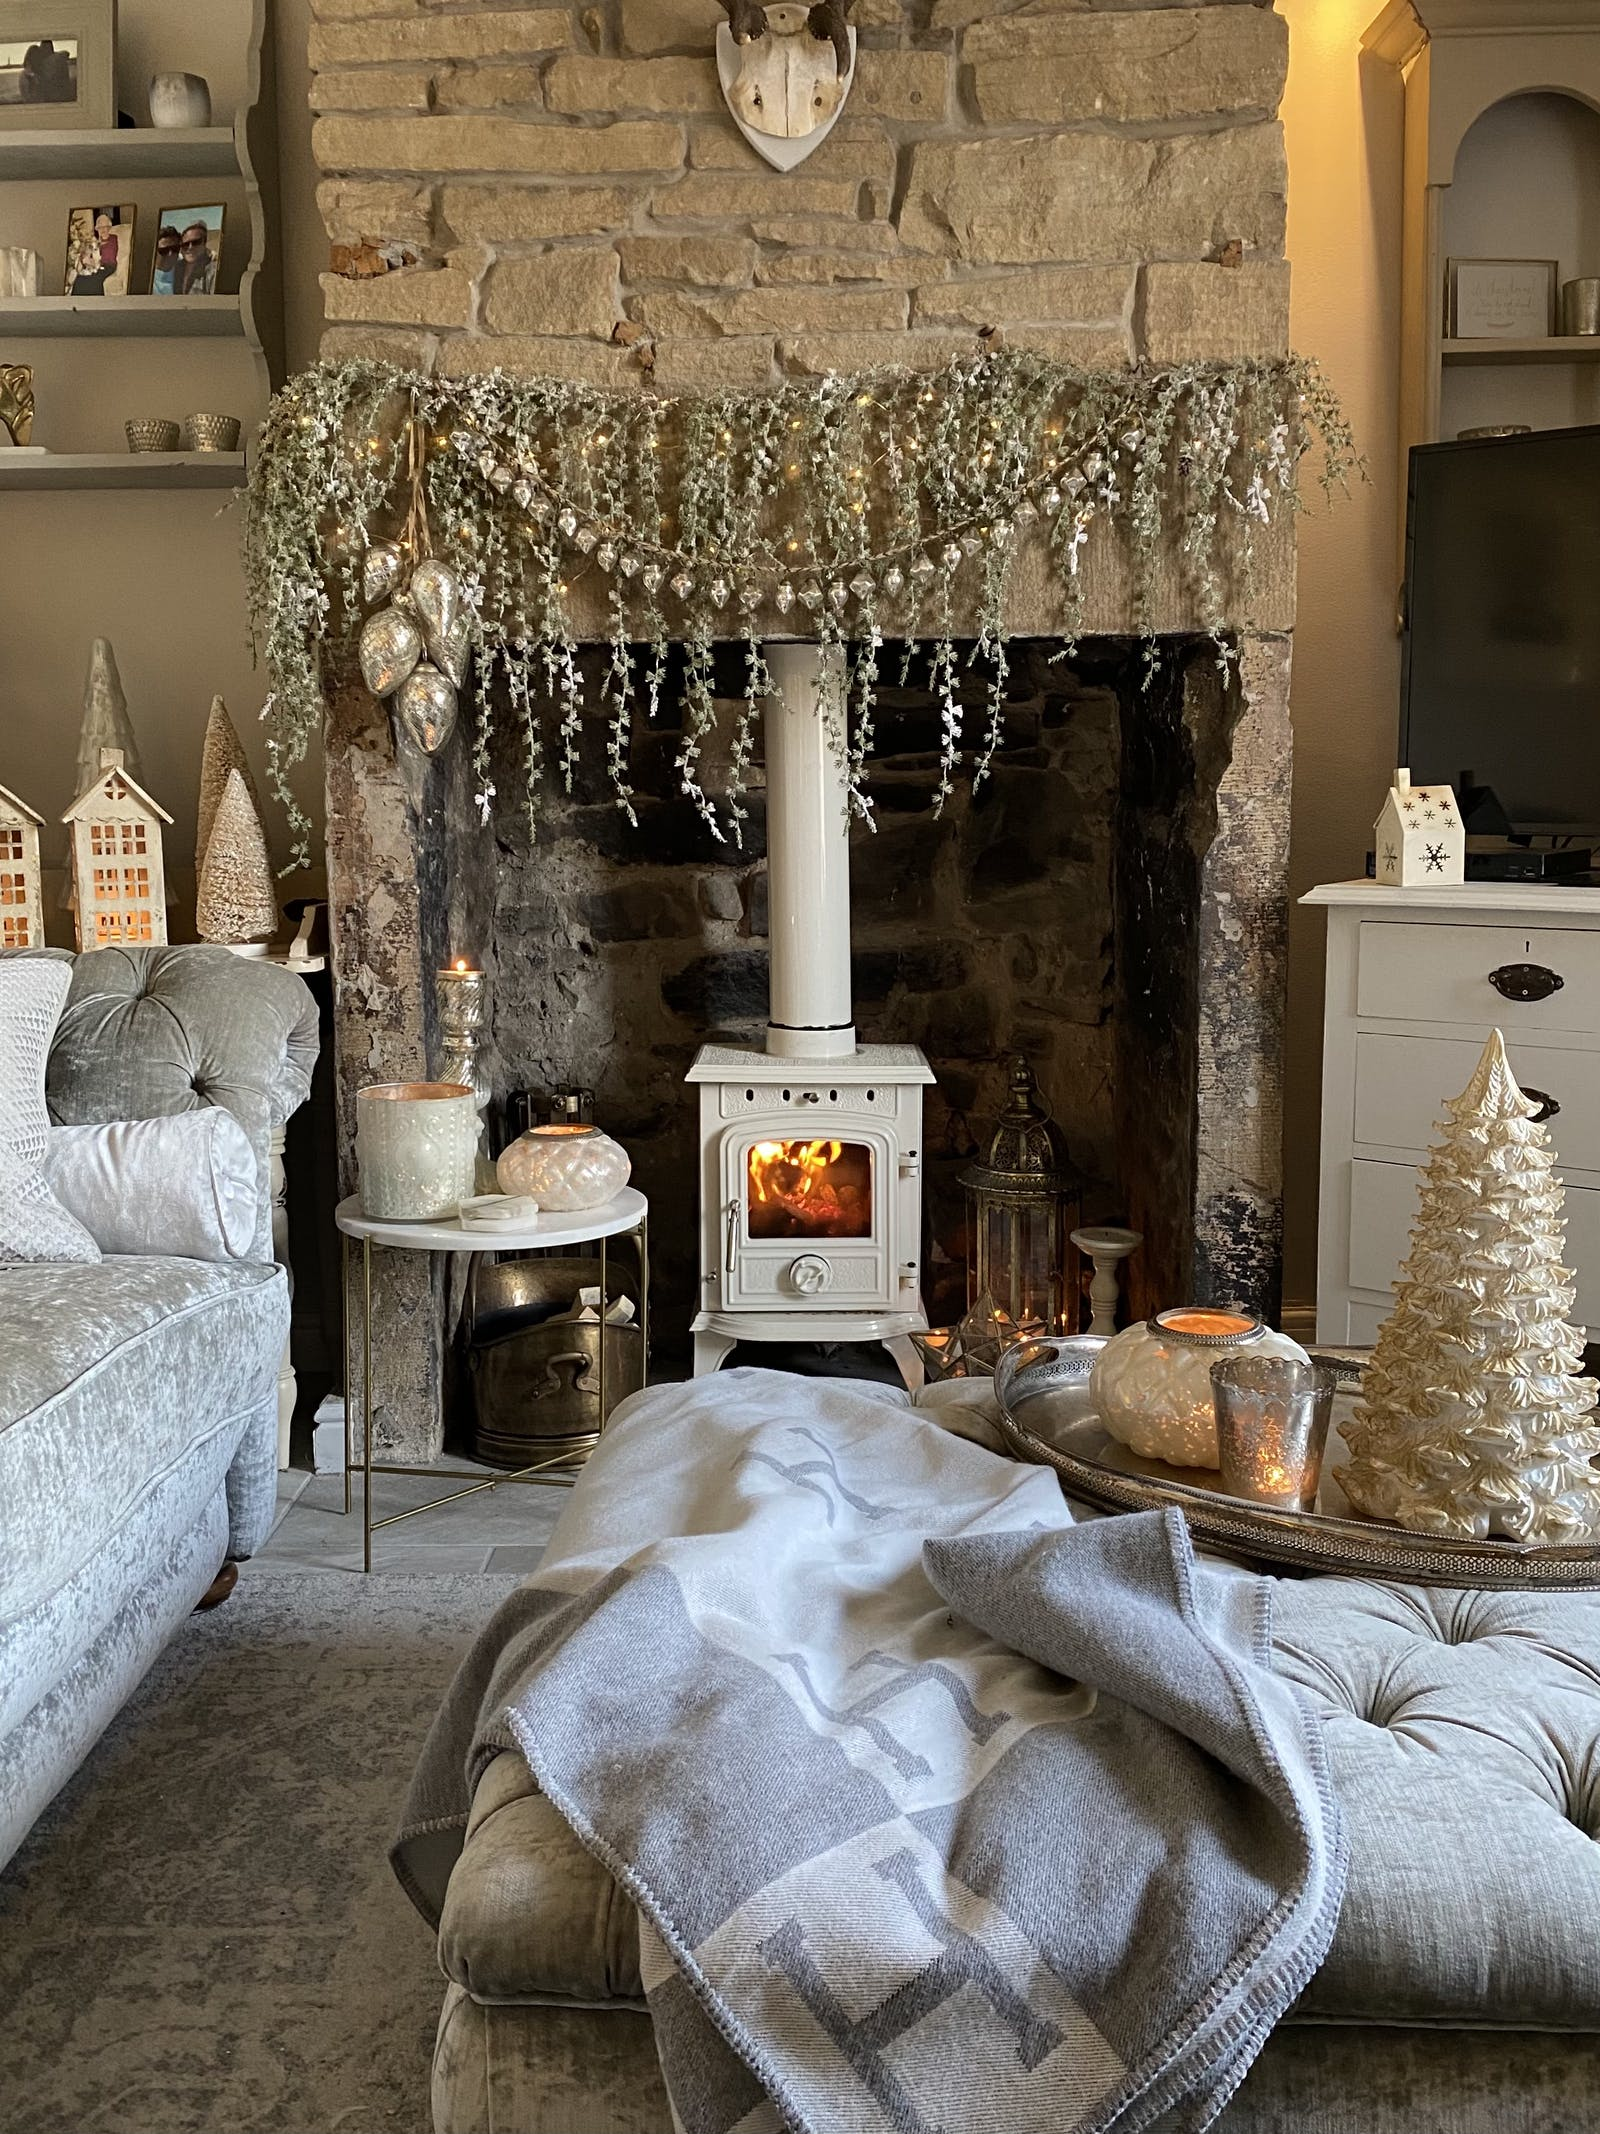 White fireplace surrounded by Christmas decor